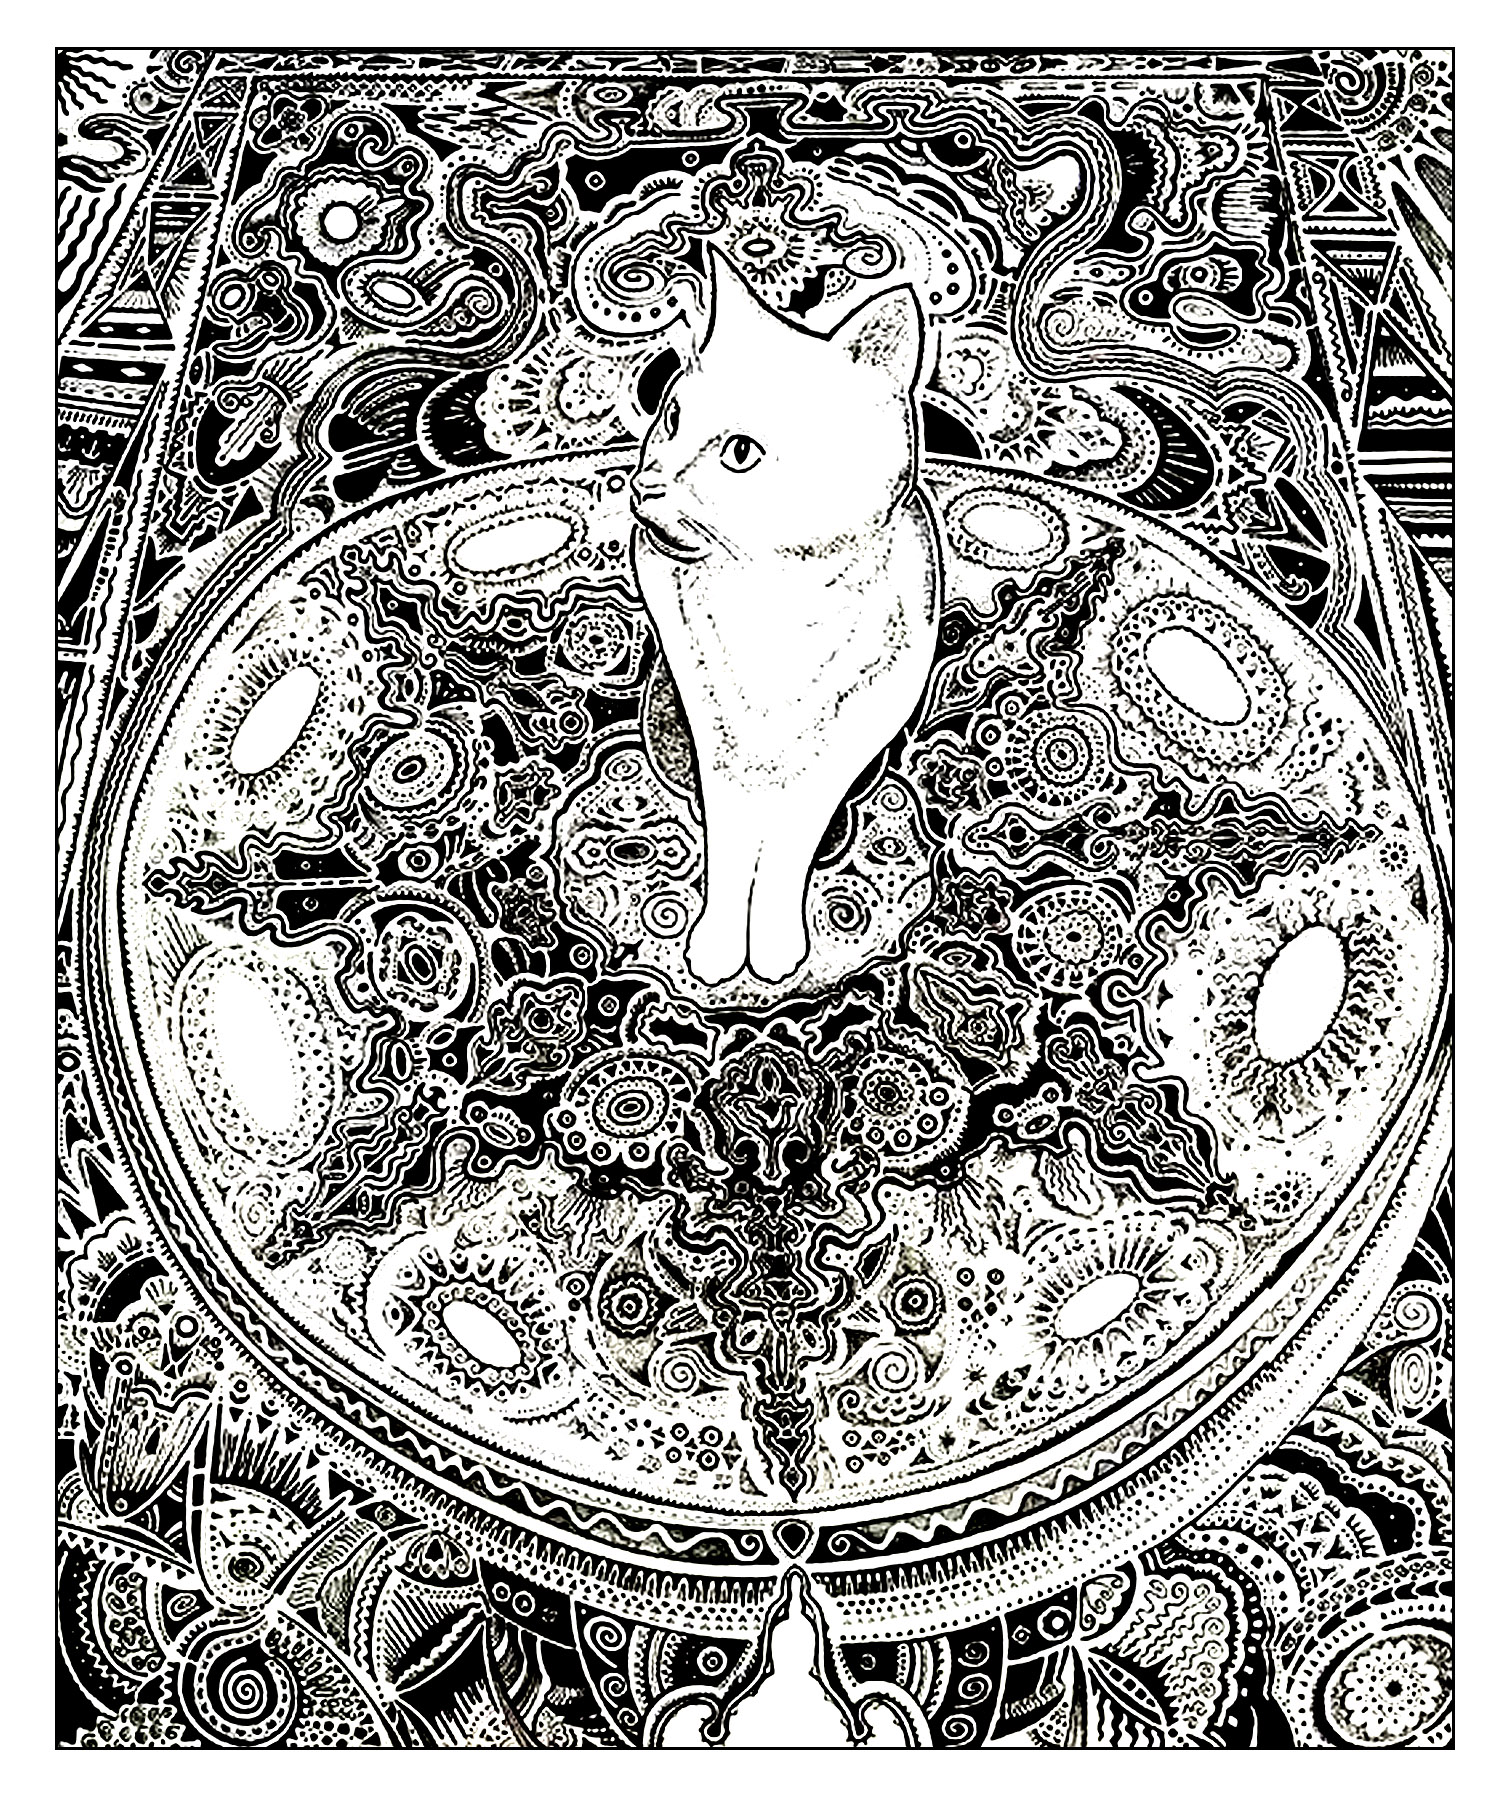 Cat on carpet - Cats Adult Coloring Pages